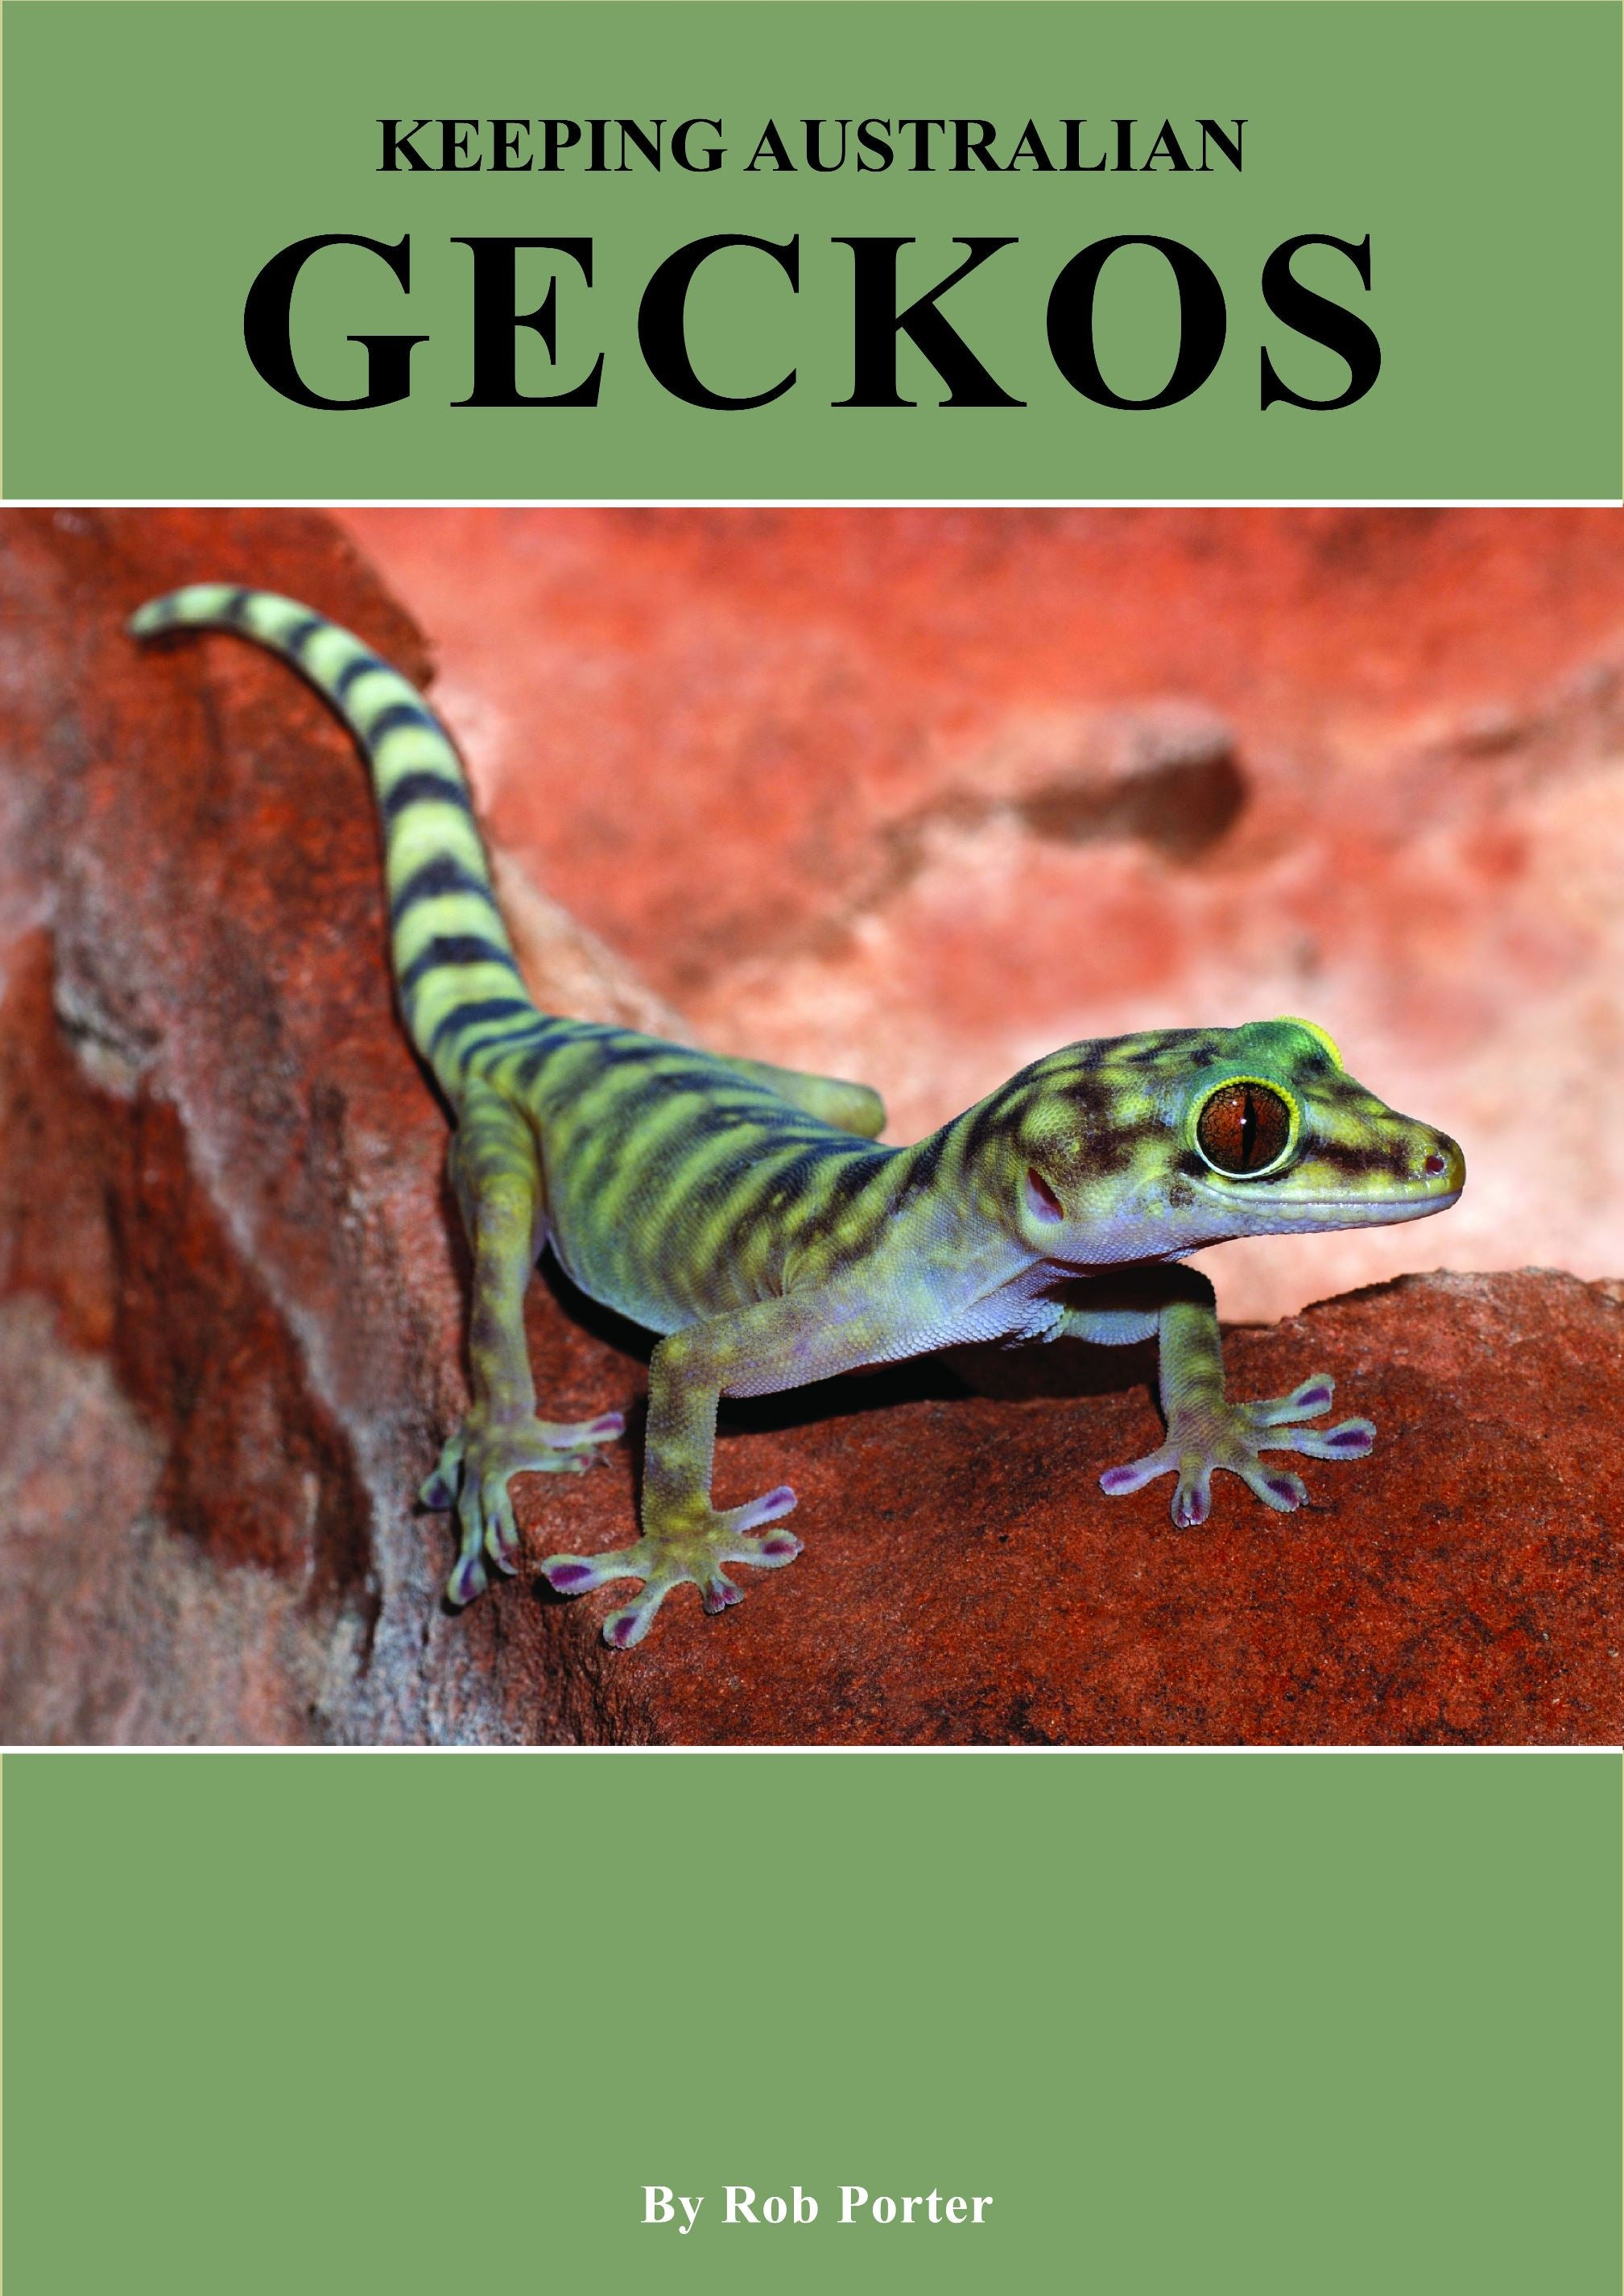 Keeping Geckos